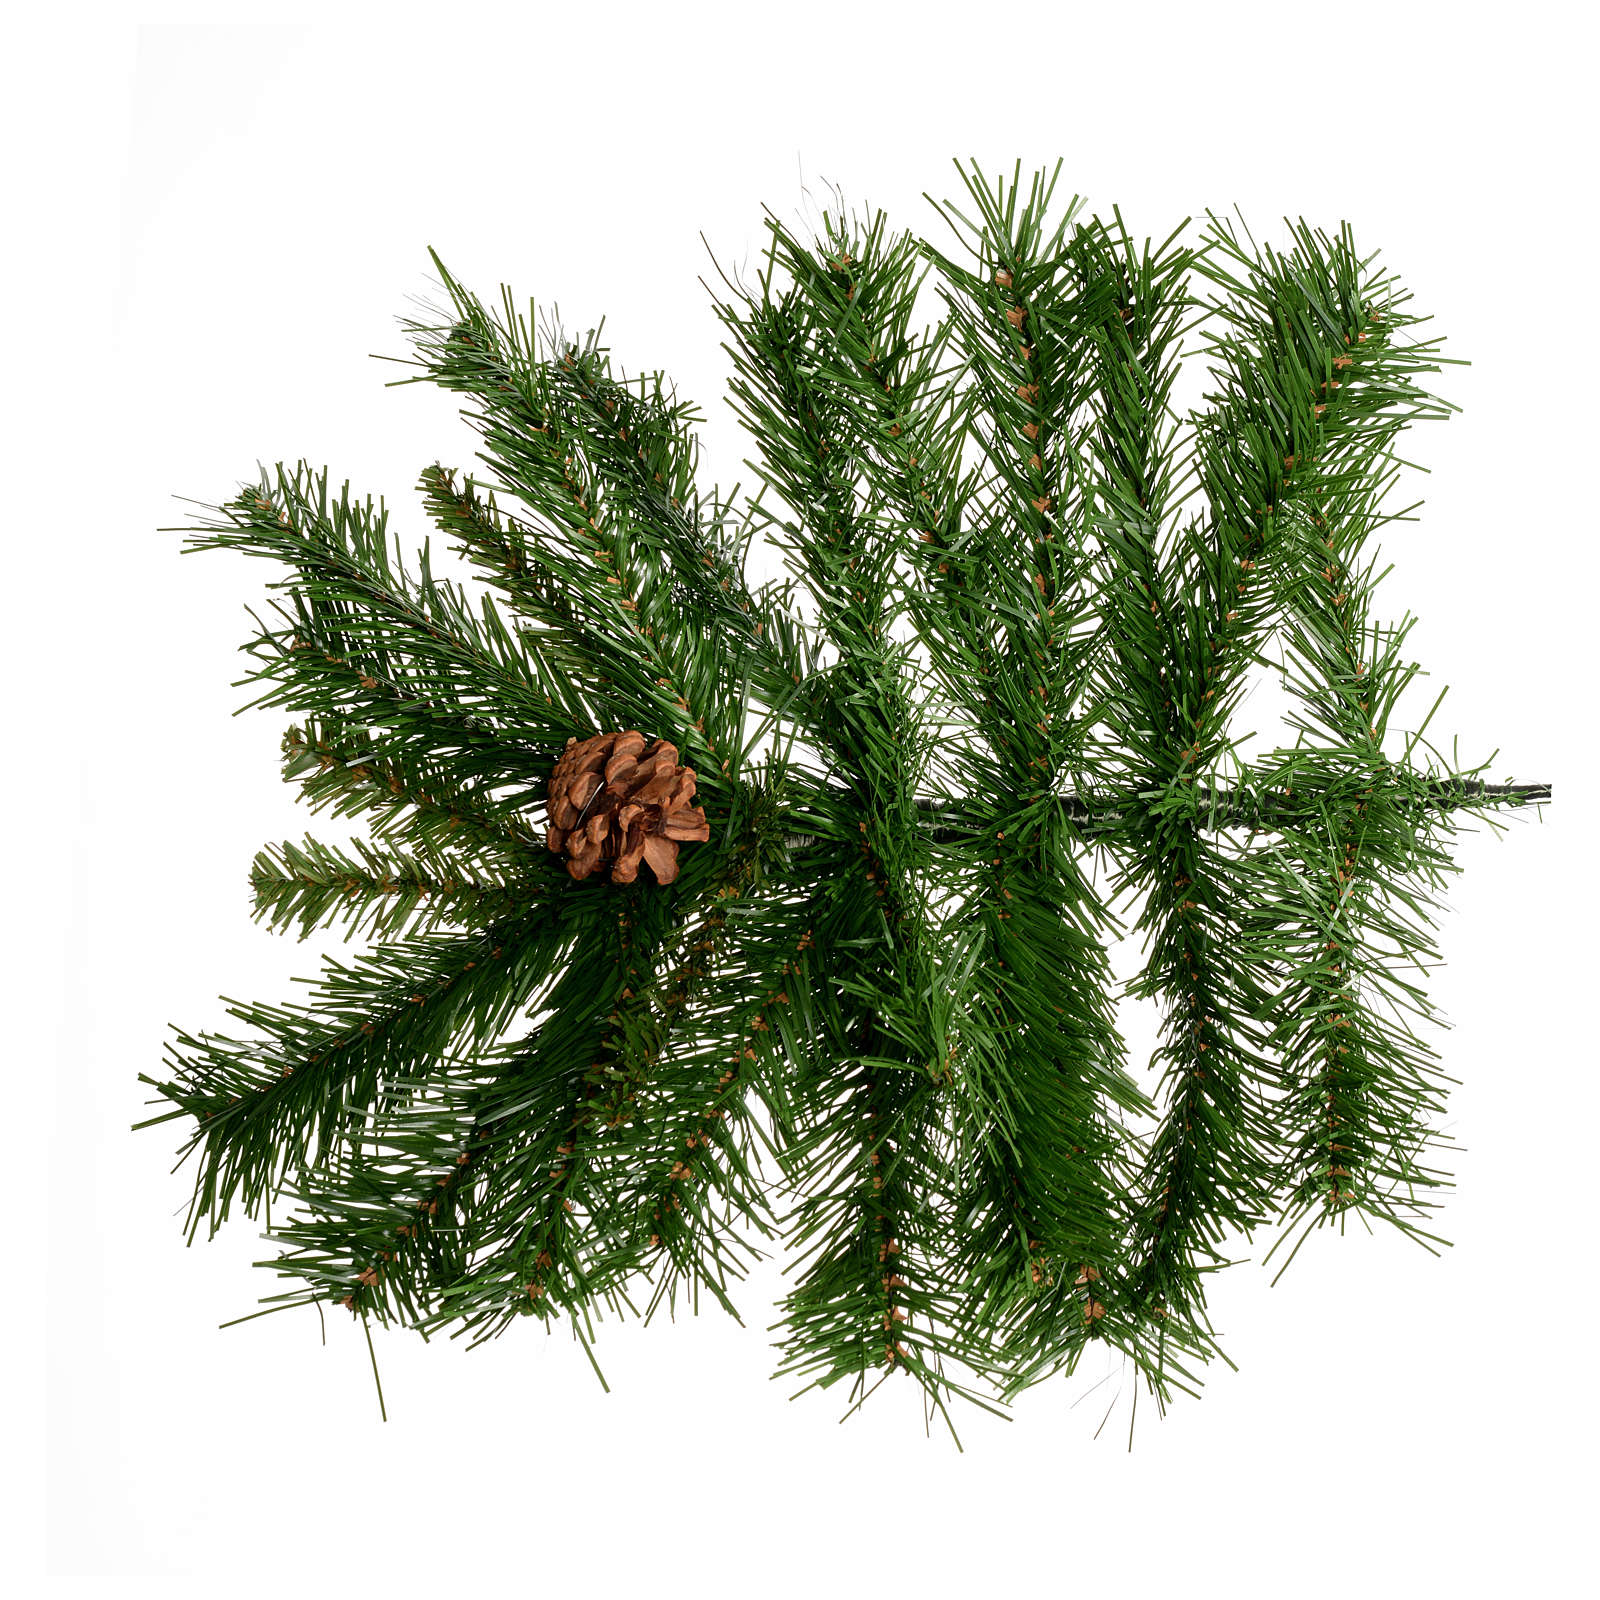 Christmas tree 270 cm Praga green pines 3